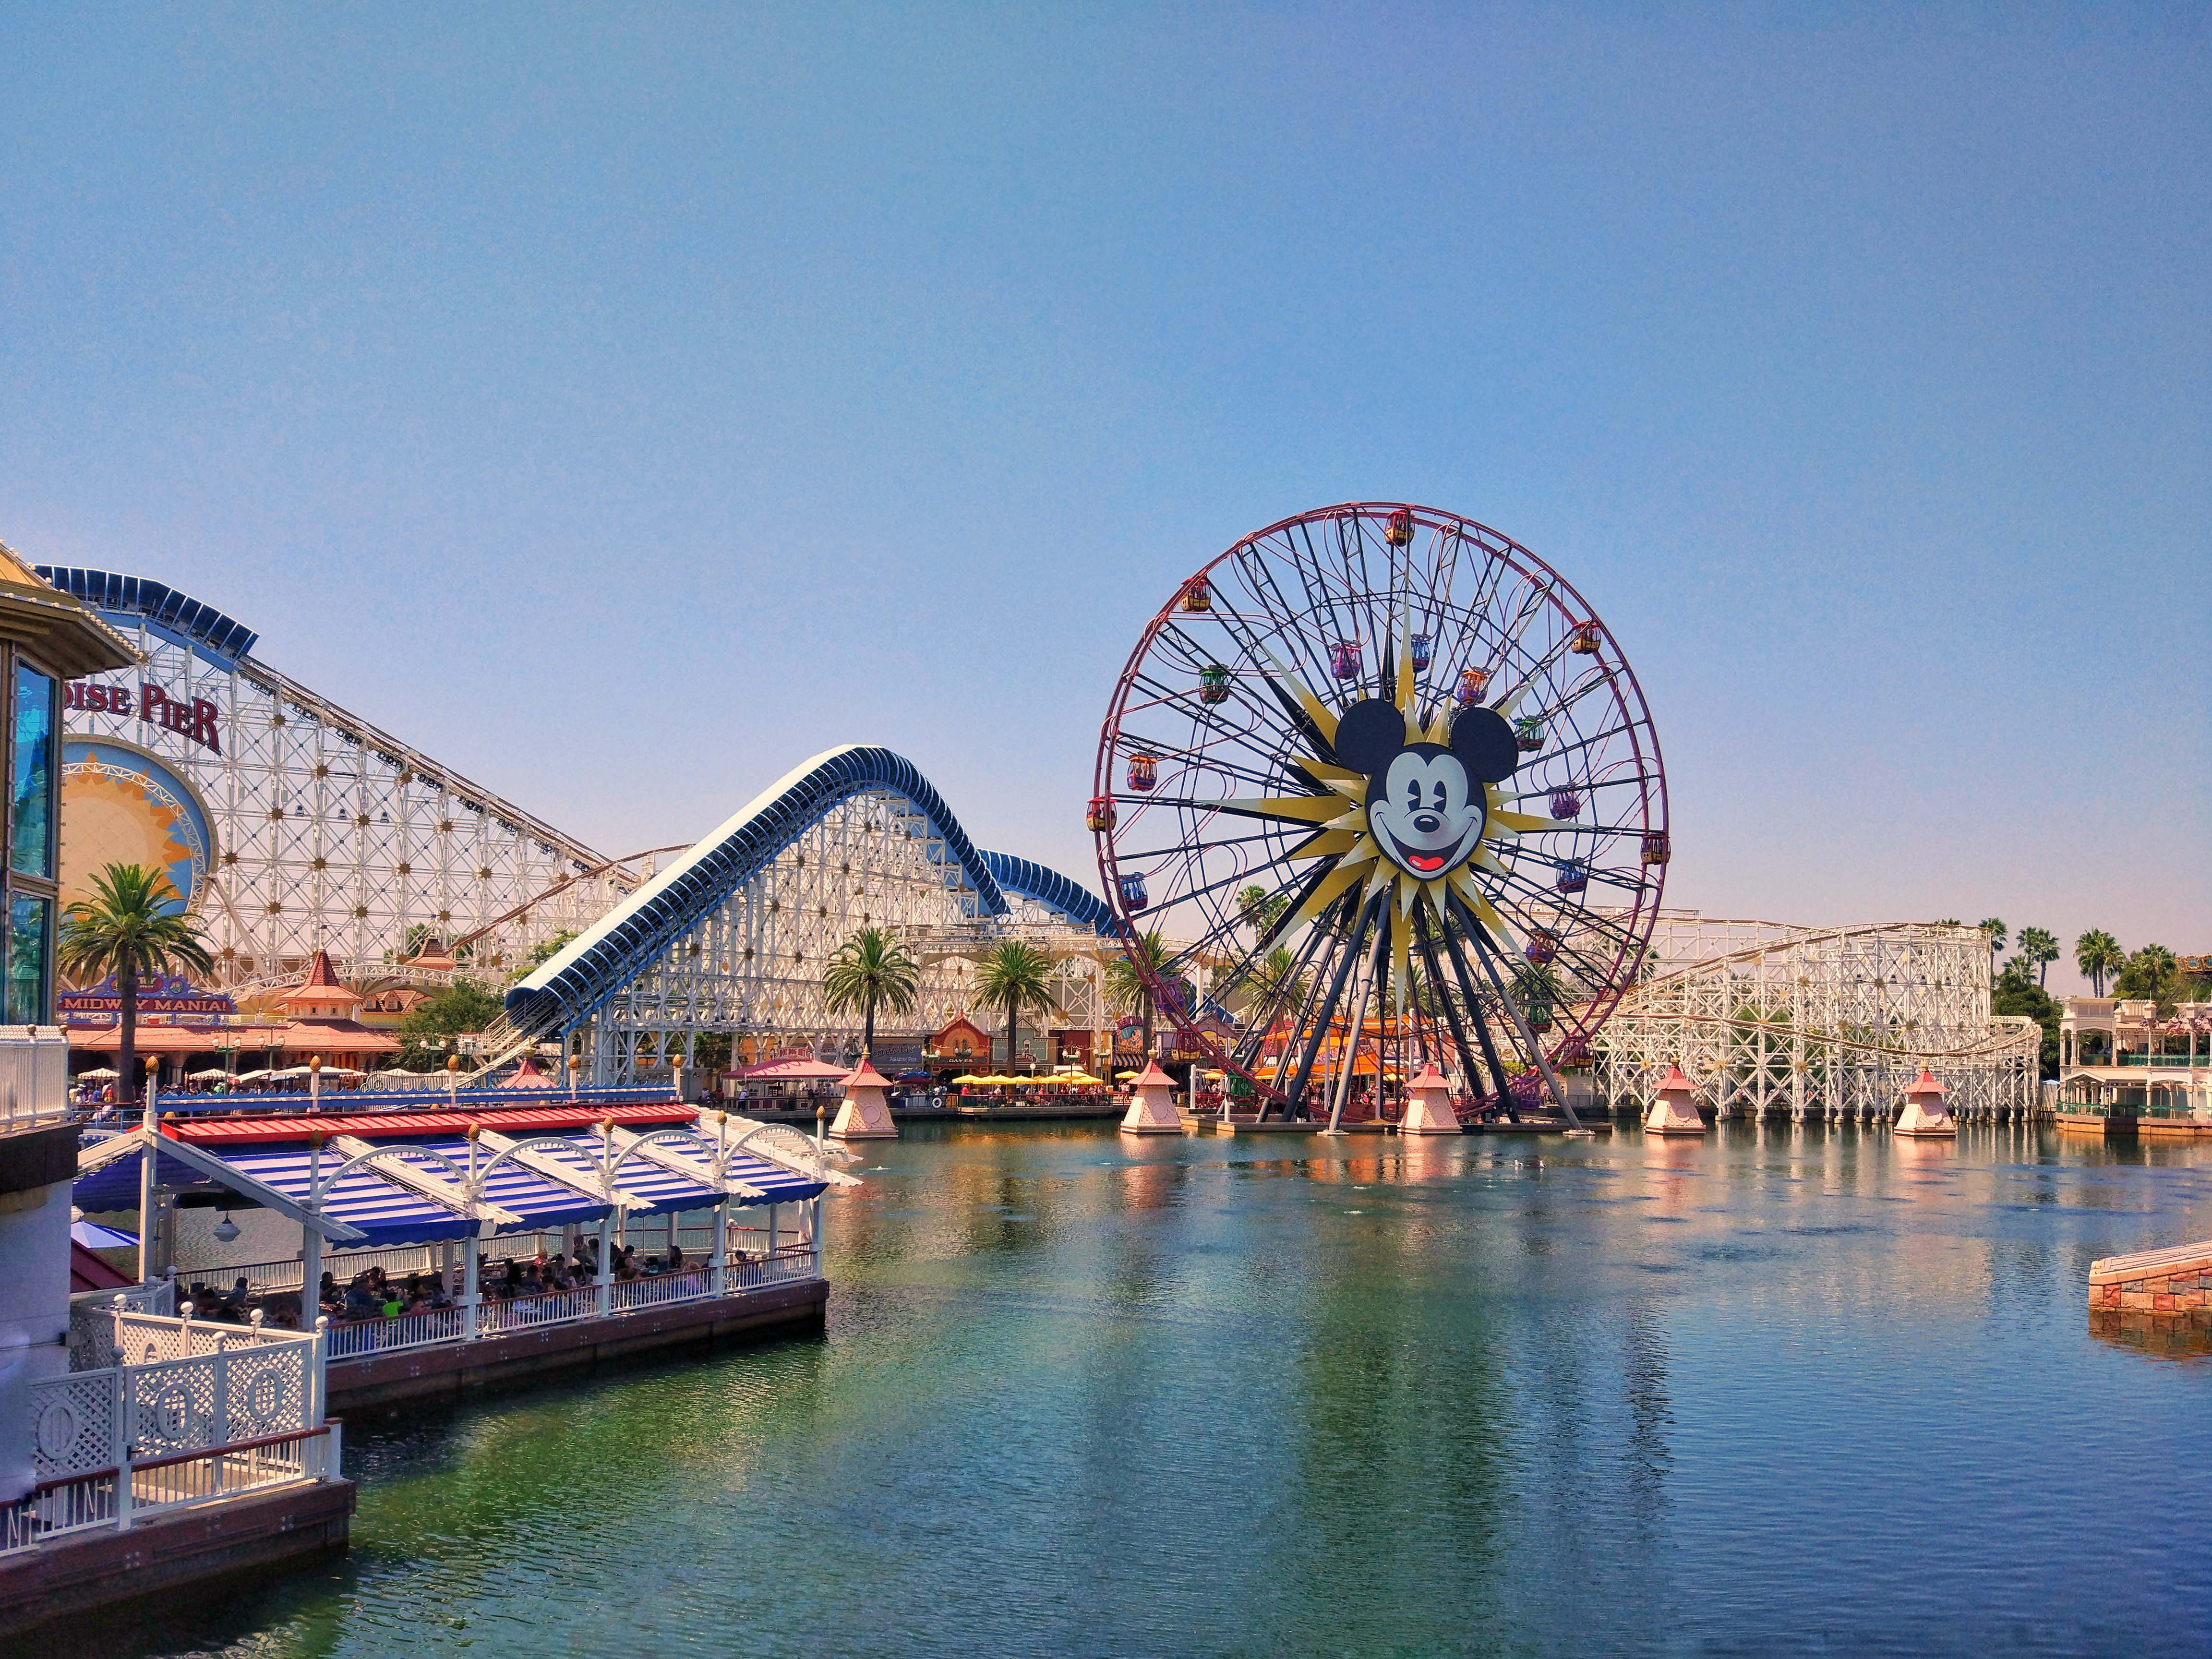 5-Day Beverly Hills, 17-Mile Drive & California Theme Parks Tour from San Francisco